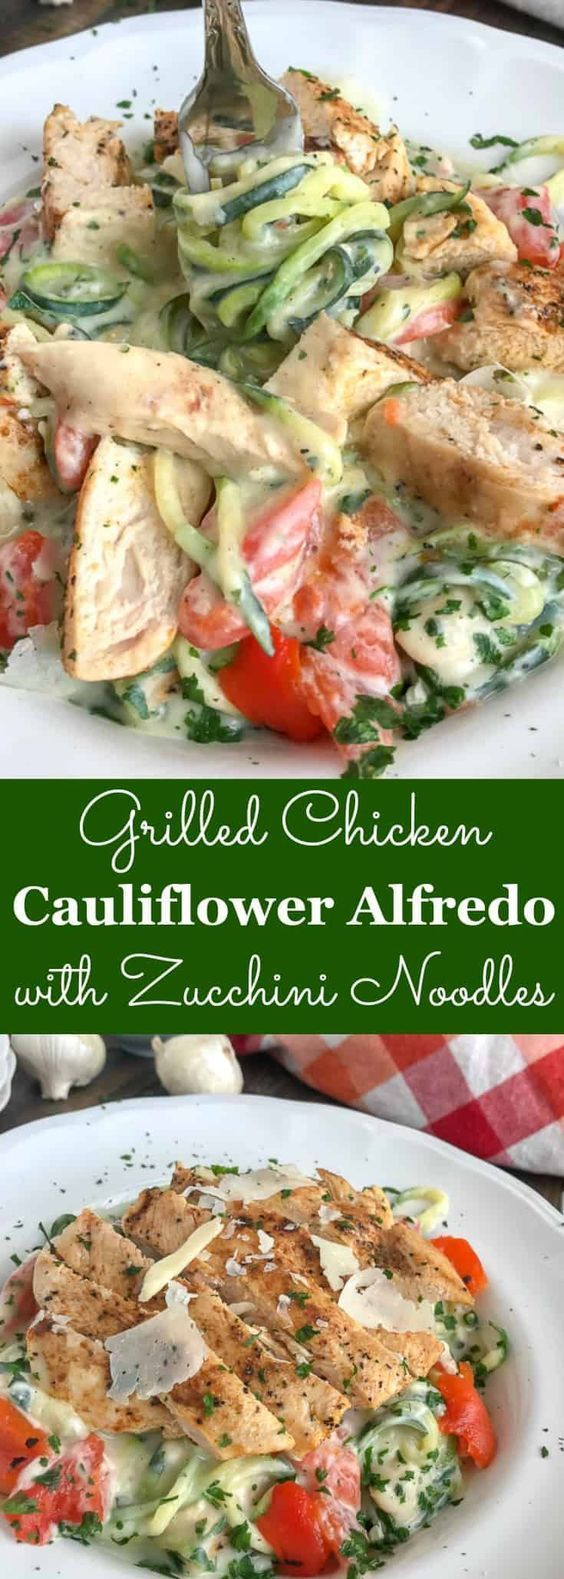 GRILLED CHICKEN CAULIFLOWER ALFREDO WITH ZUCCHINI NOODLES Recipes | Quotes Recipes